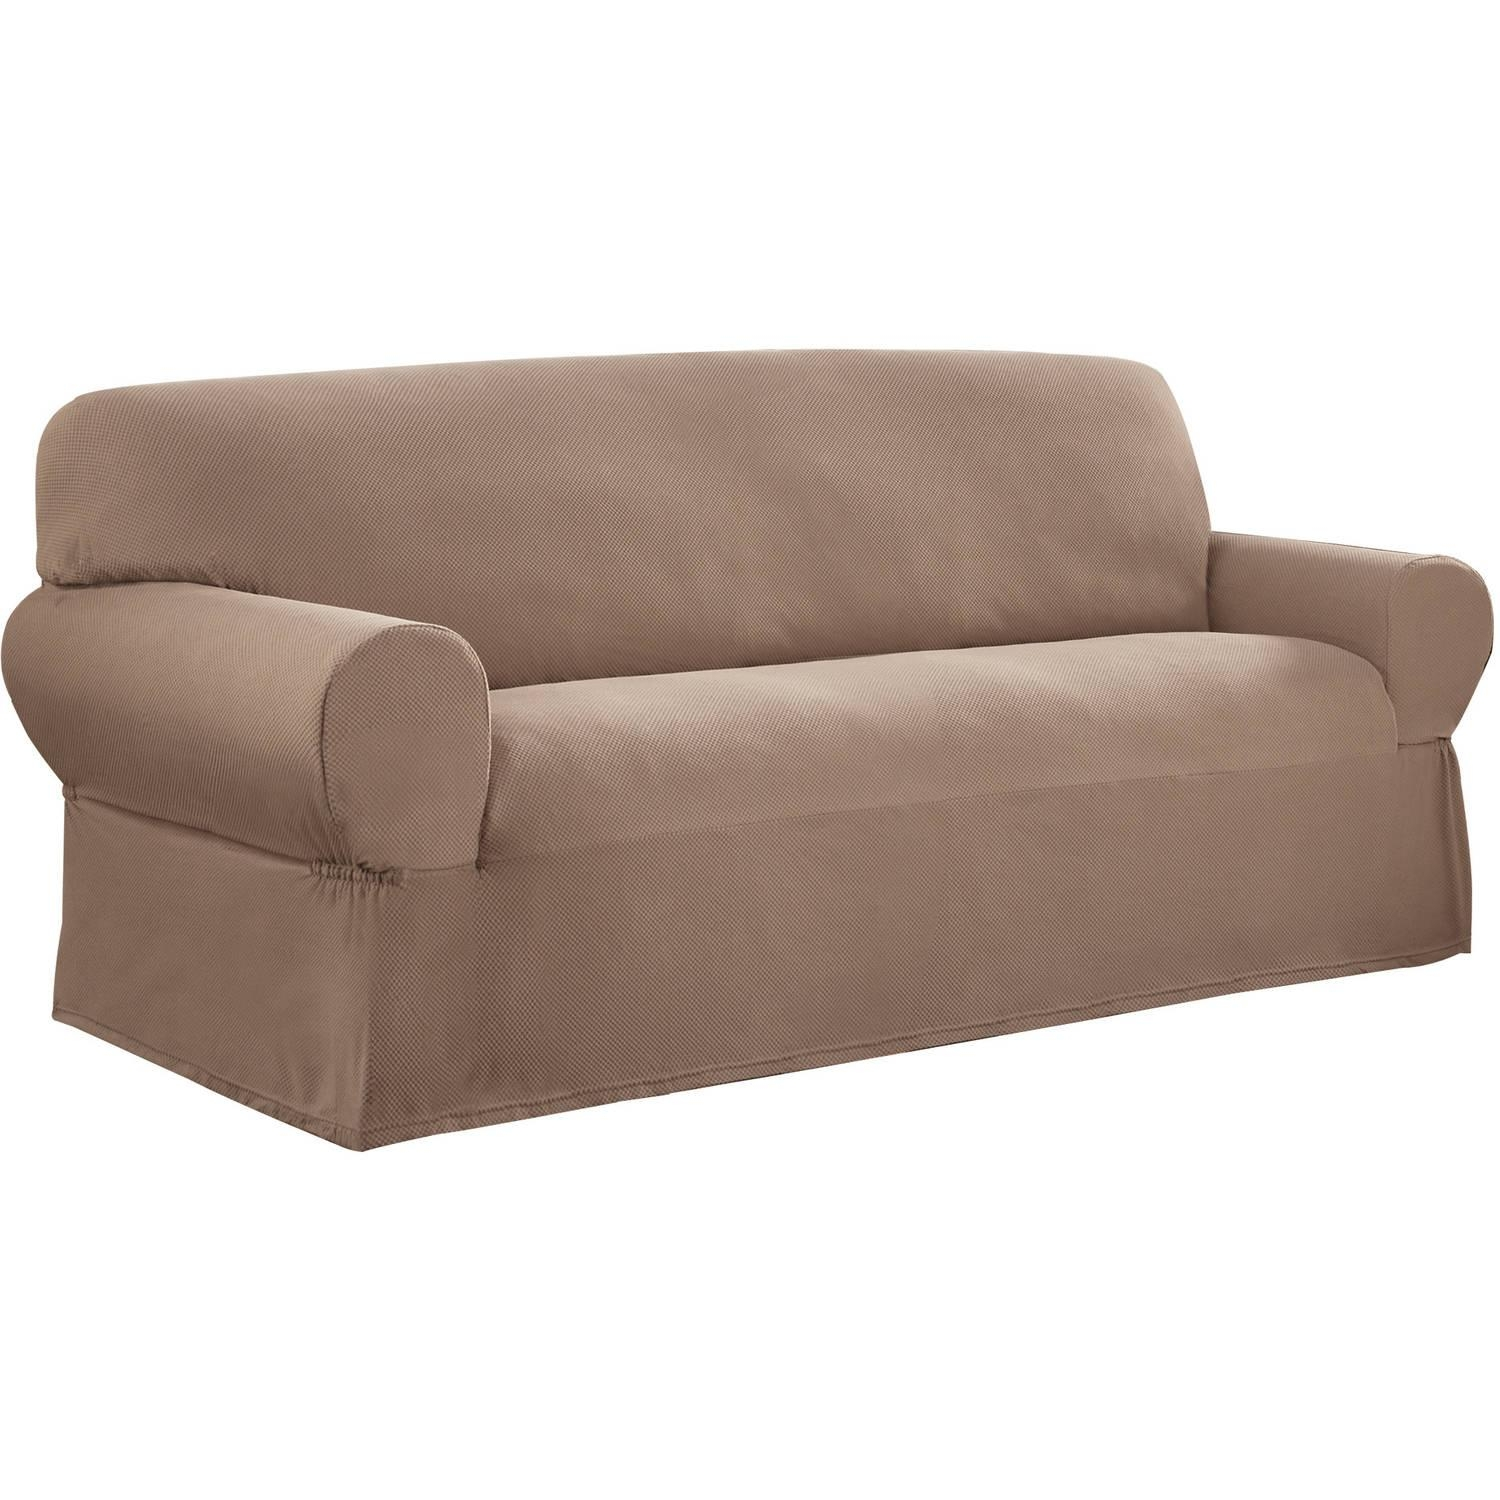 Sofas : Amazing T Cushion Loveseat Slipcover 3 Piece T Cushion With Regard To 2 Piece Sofa Covers (View 9 of 27)